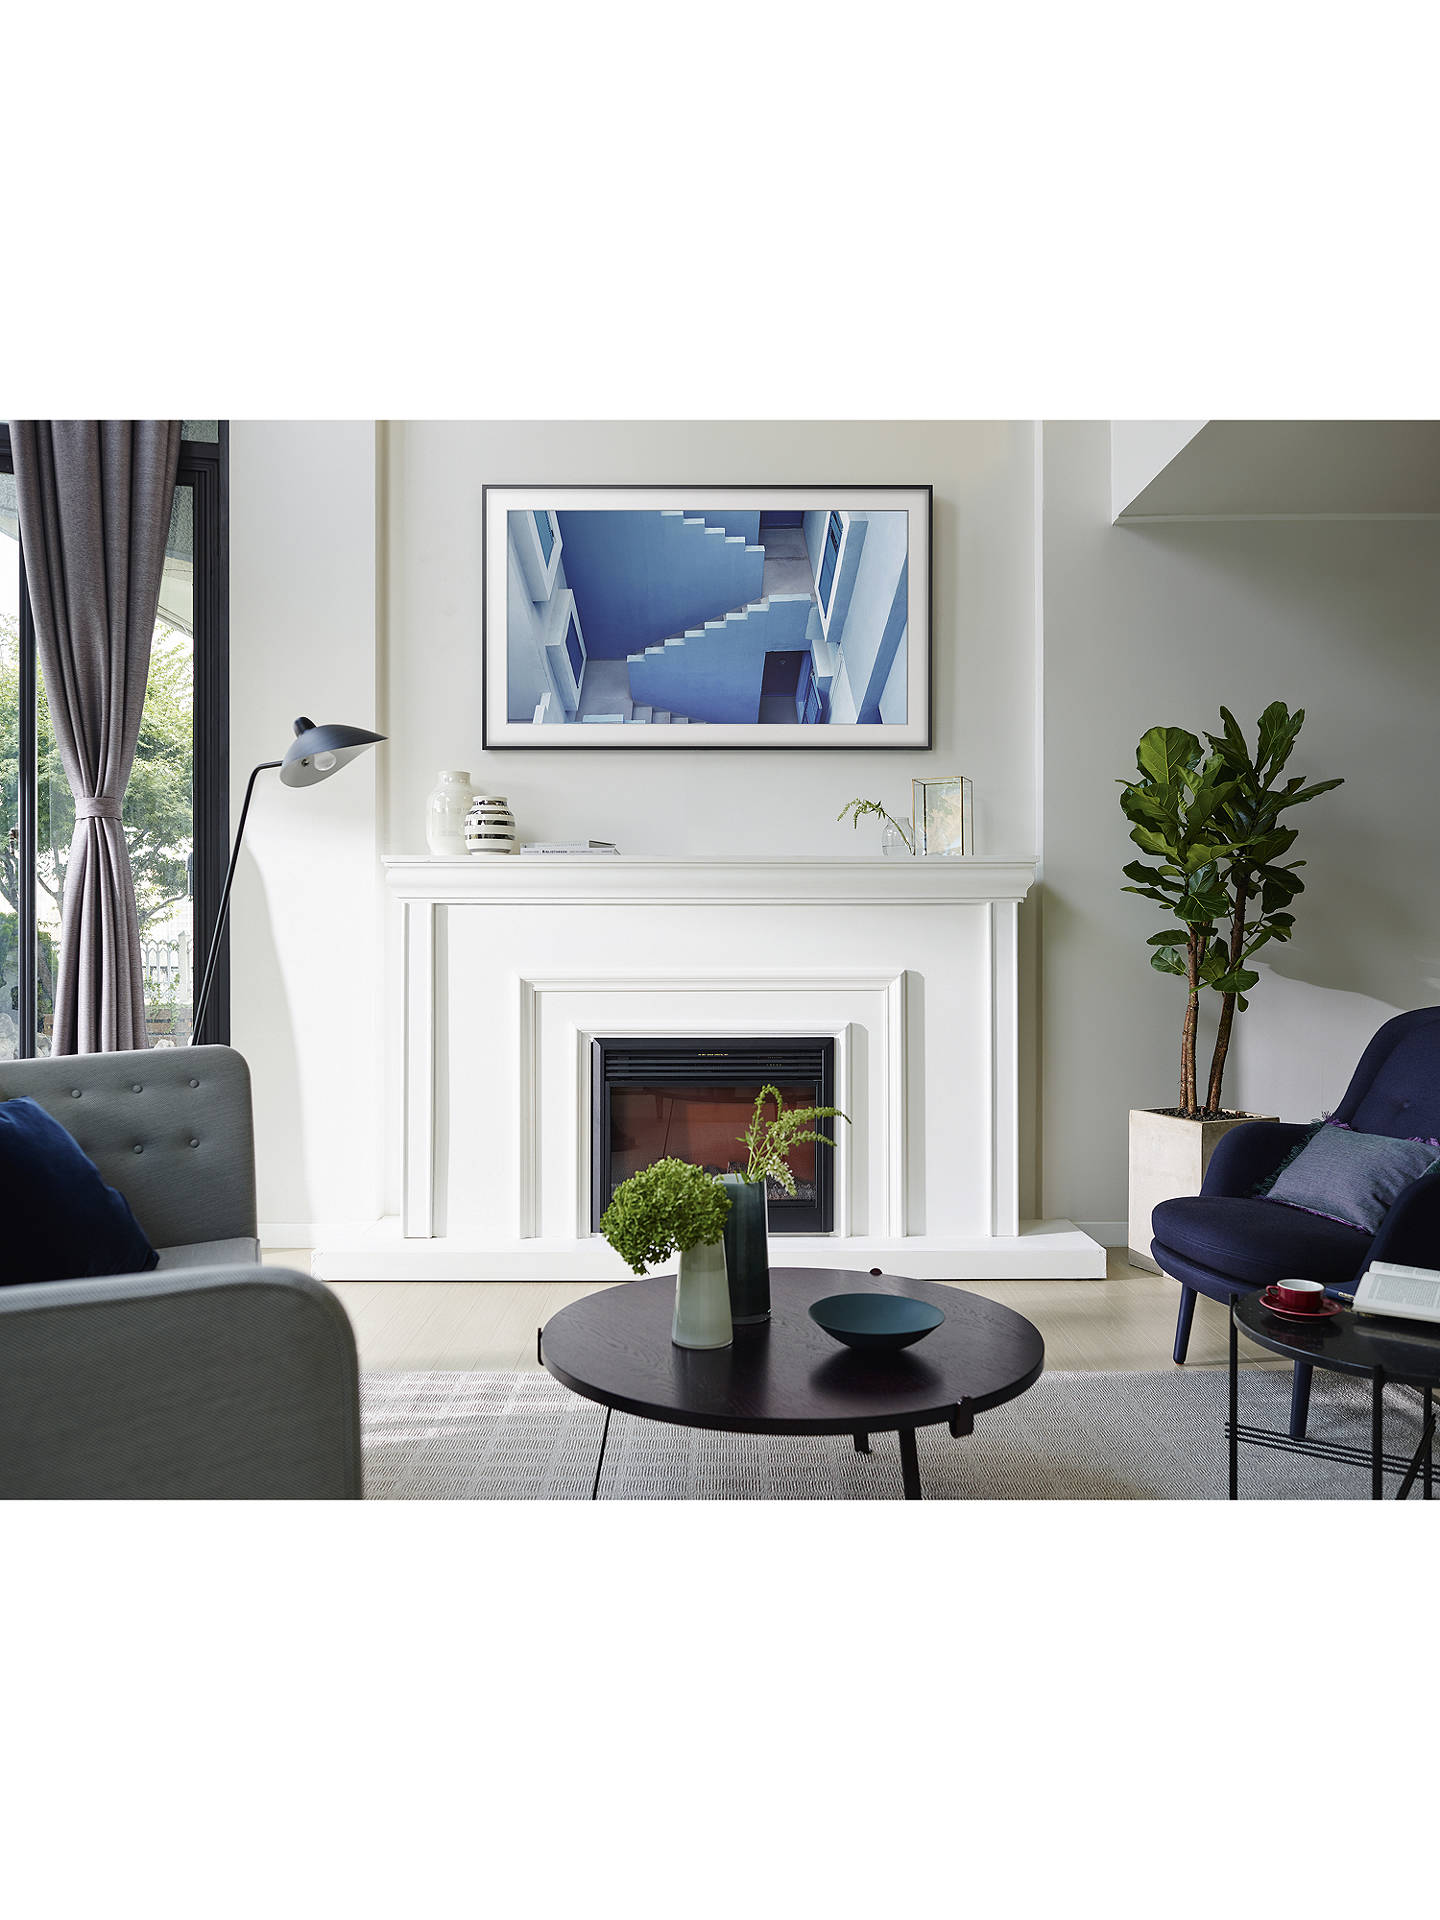 Buy samsung the frame art mode tv with no gap wall mount 55